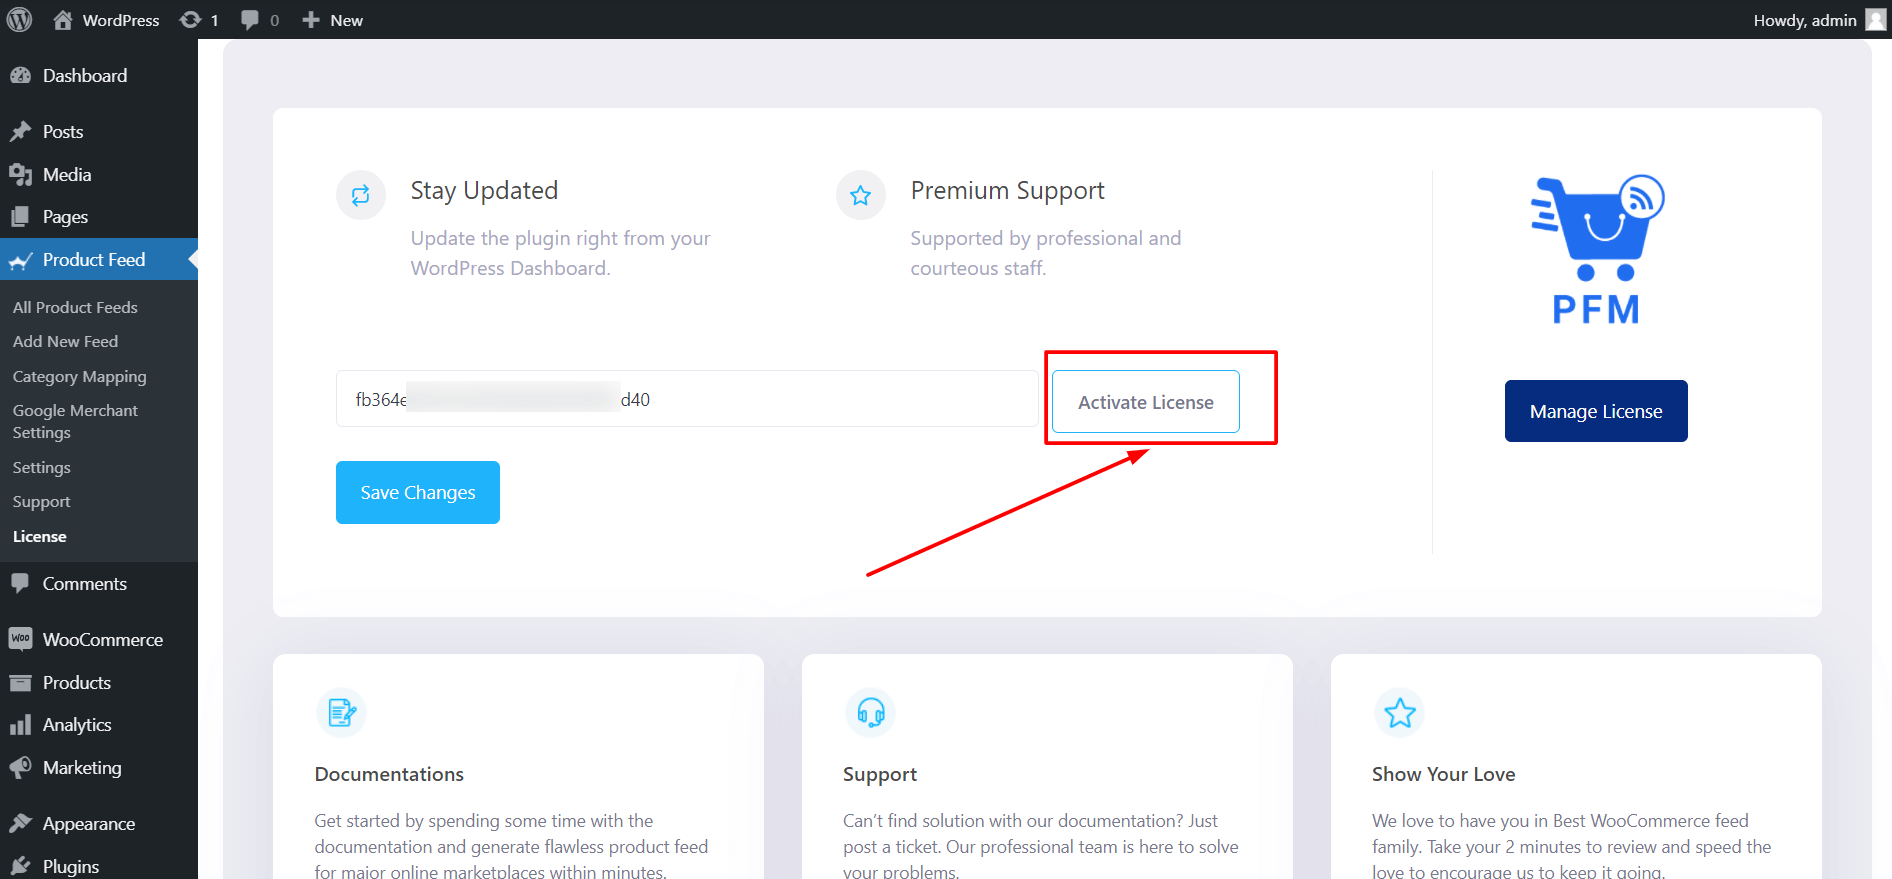 Product Feed Manager Activate License